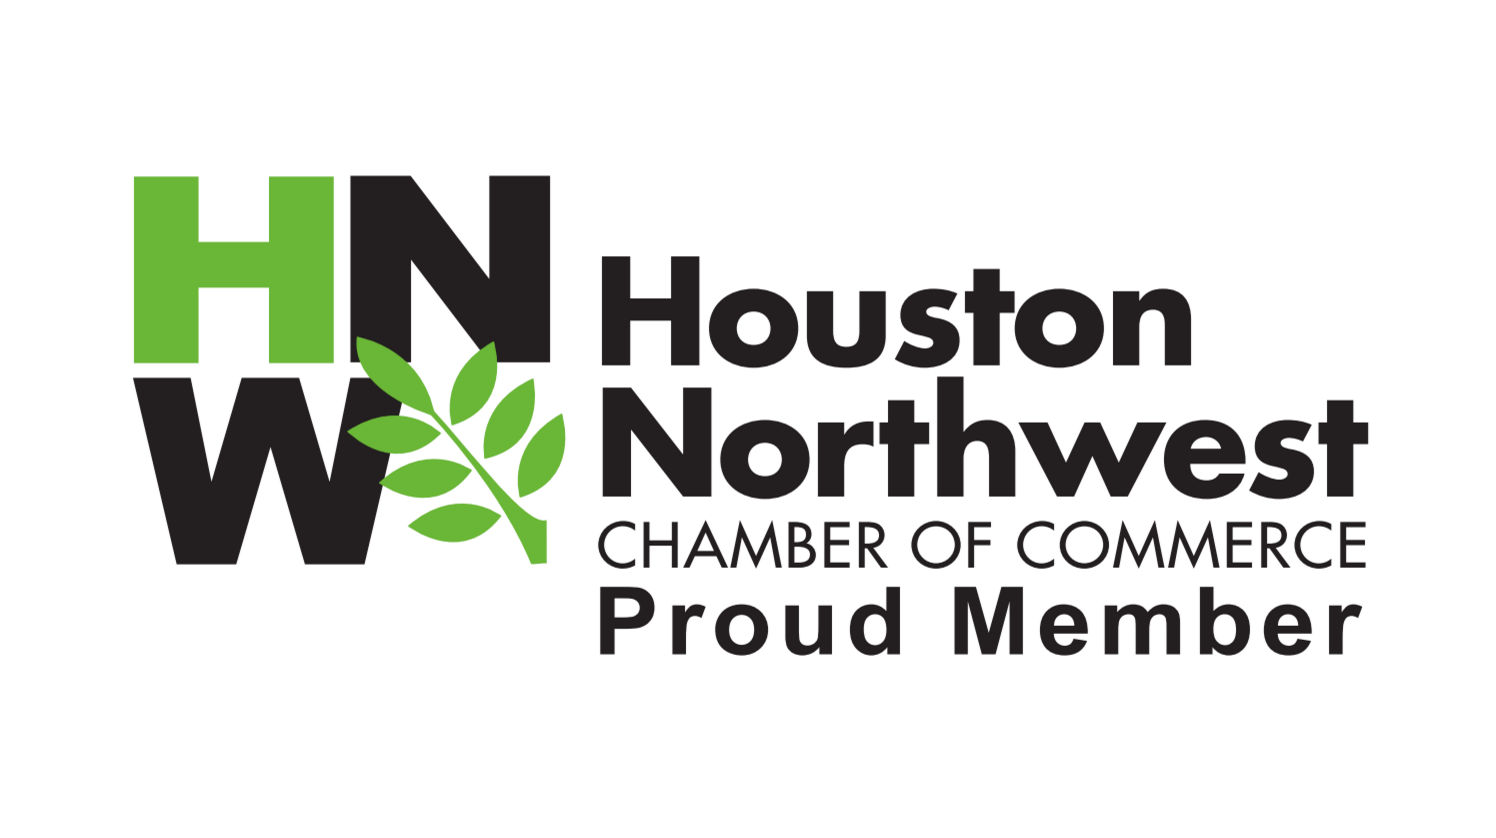 EZ Exit Now timeshare termination professionals are affiliated with Houston Northwest Chamber of Commerce